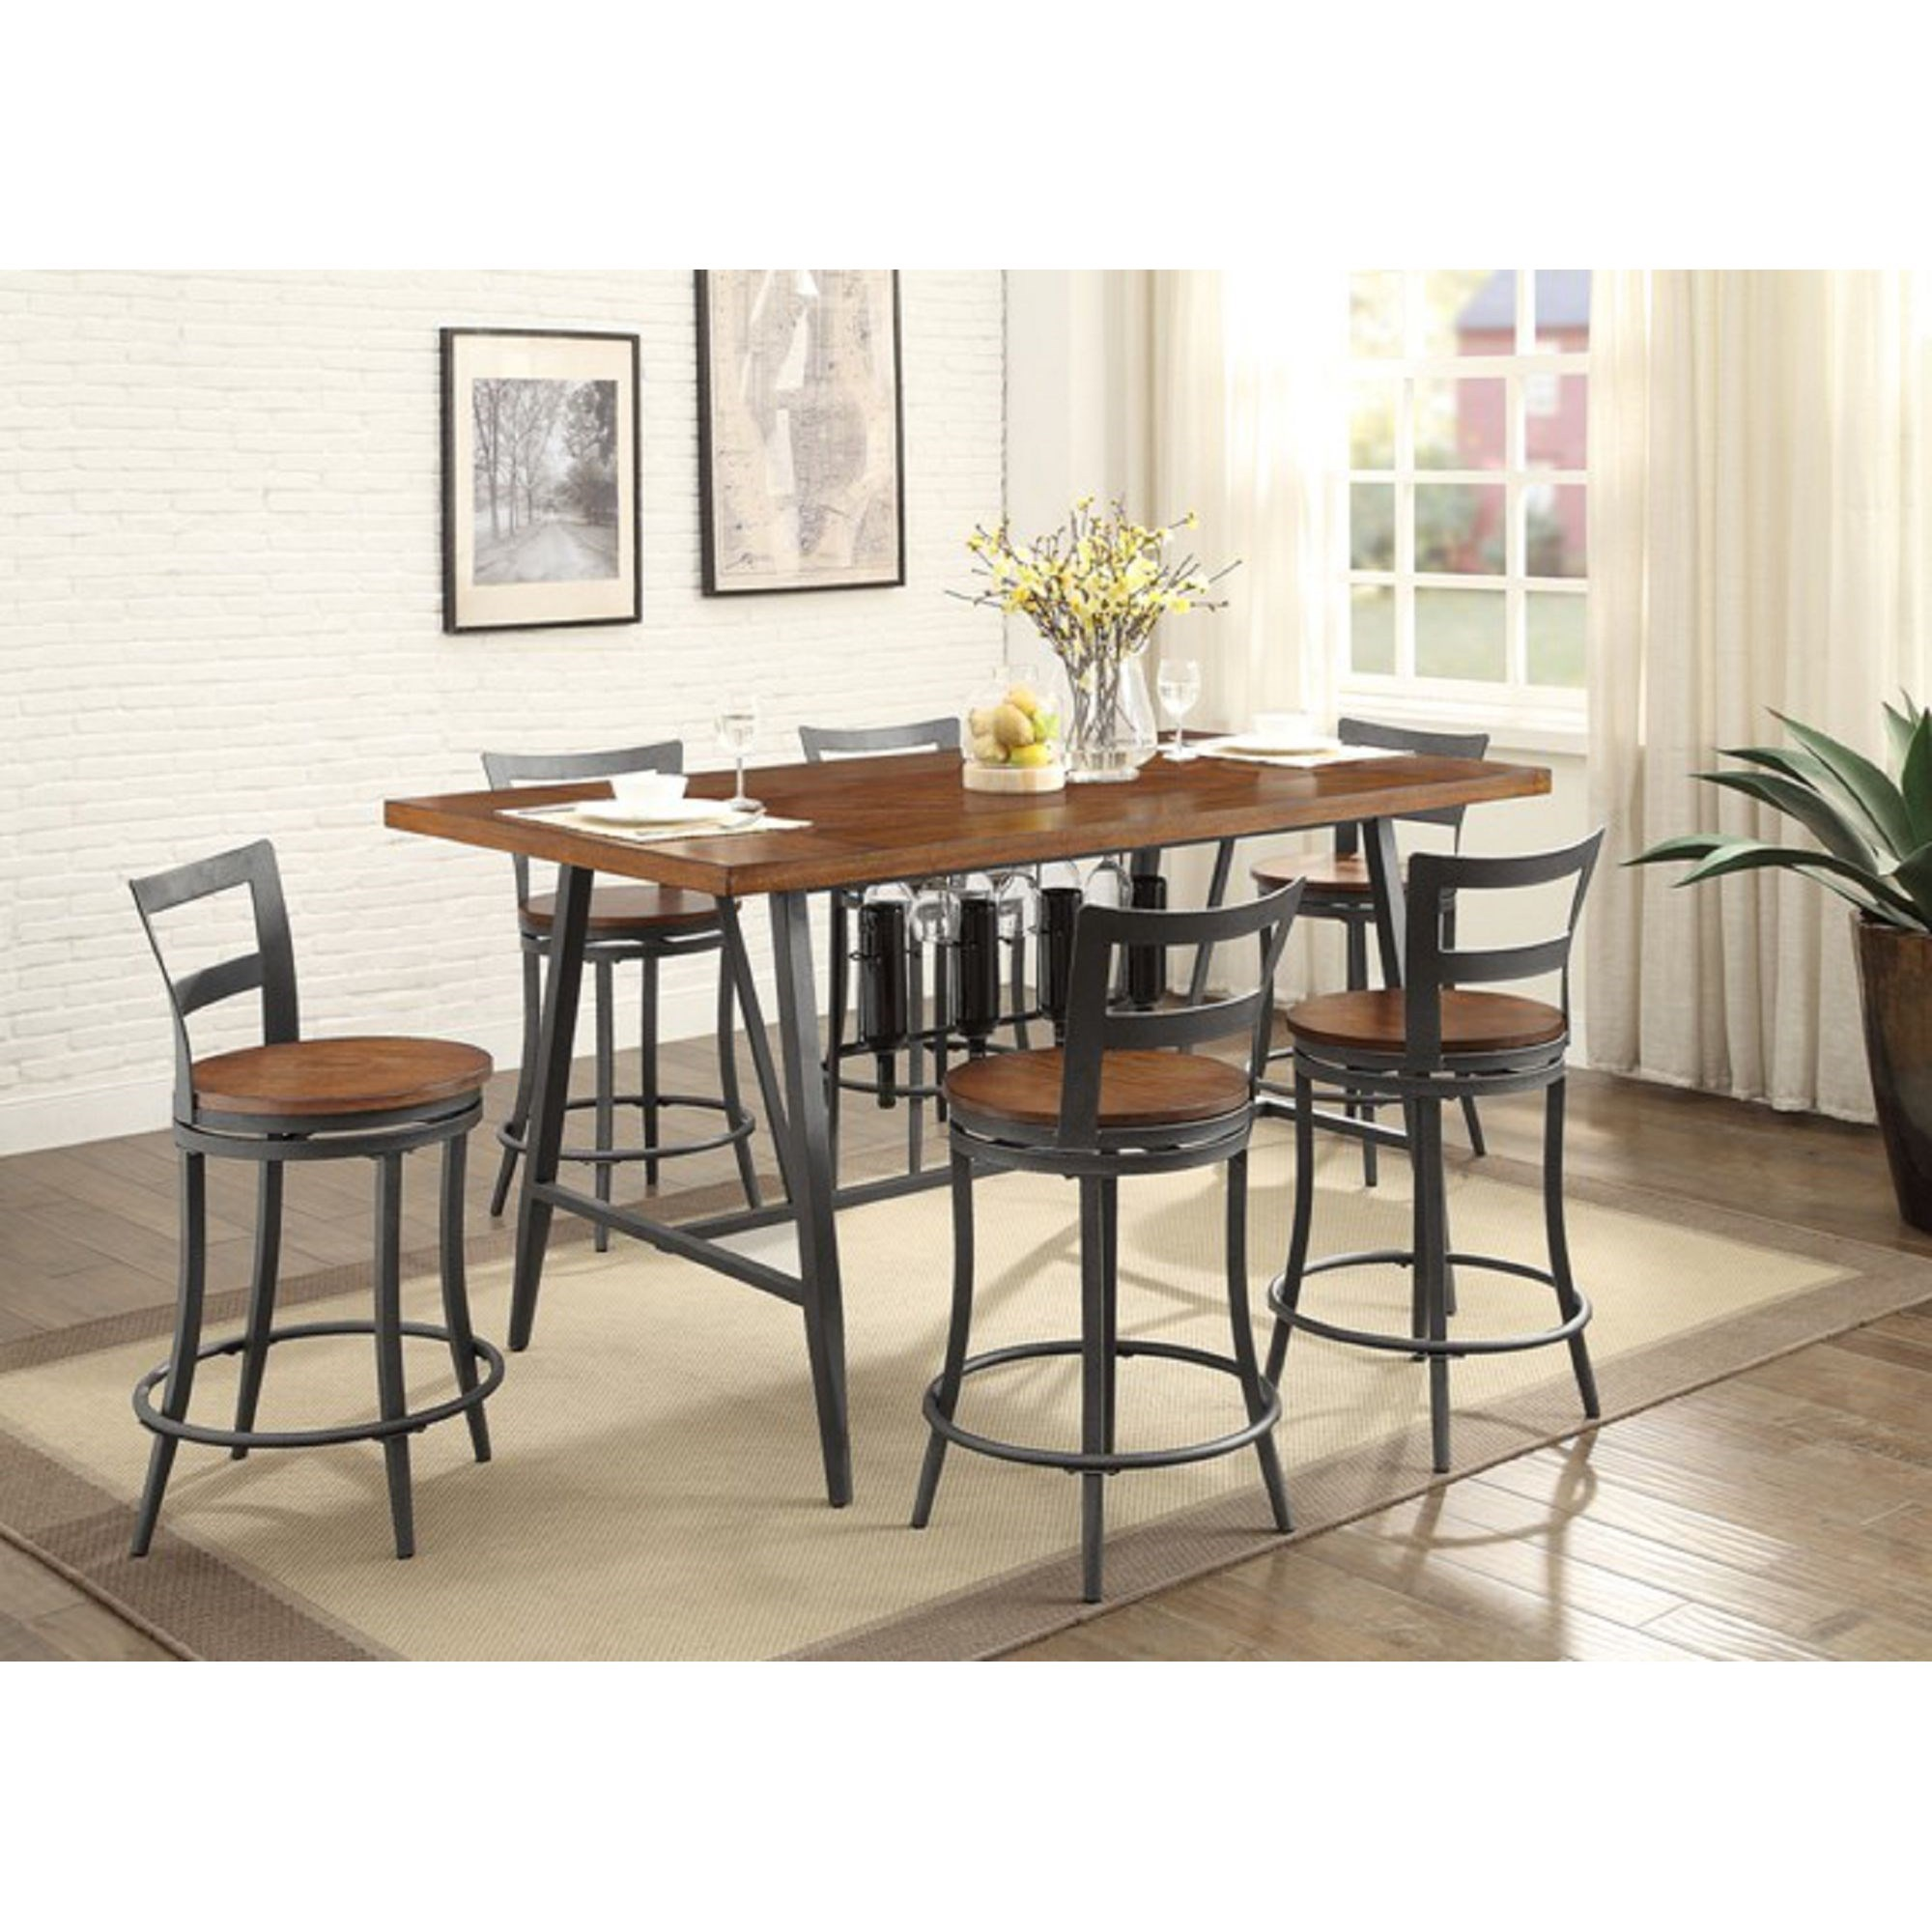 counter height table and chair sets replacement wood seats homelegance selbyville contemporary